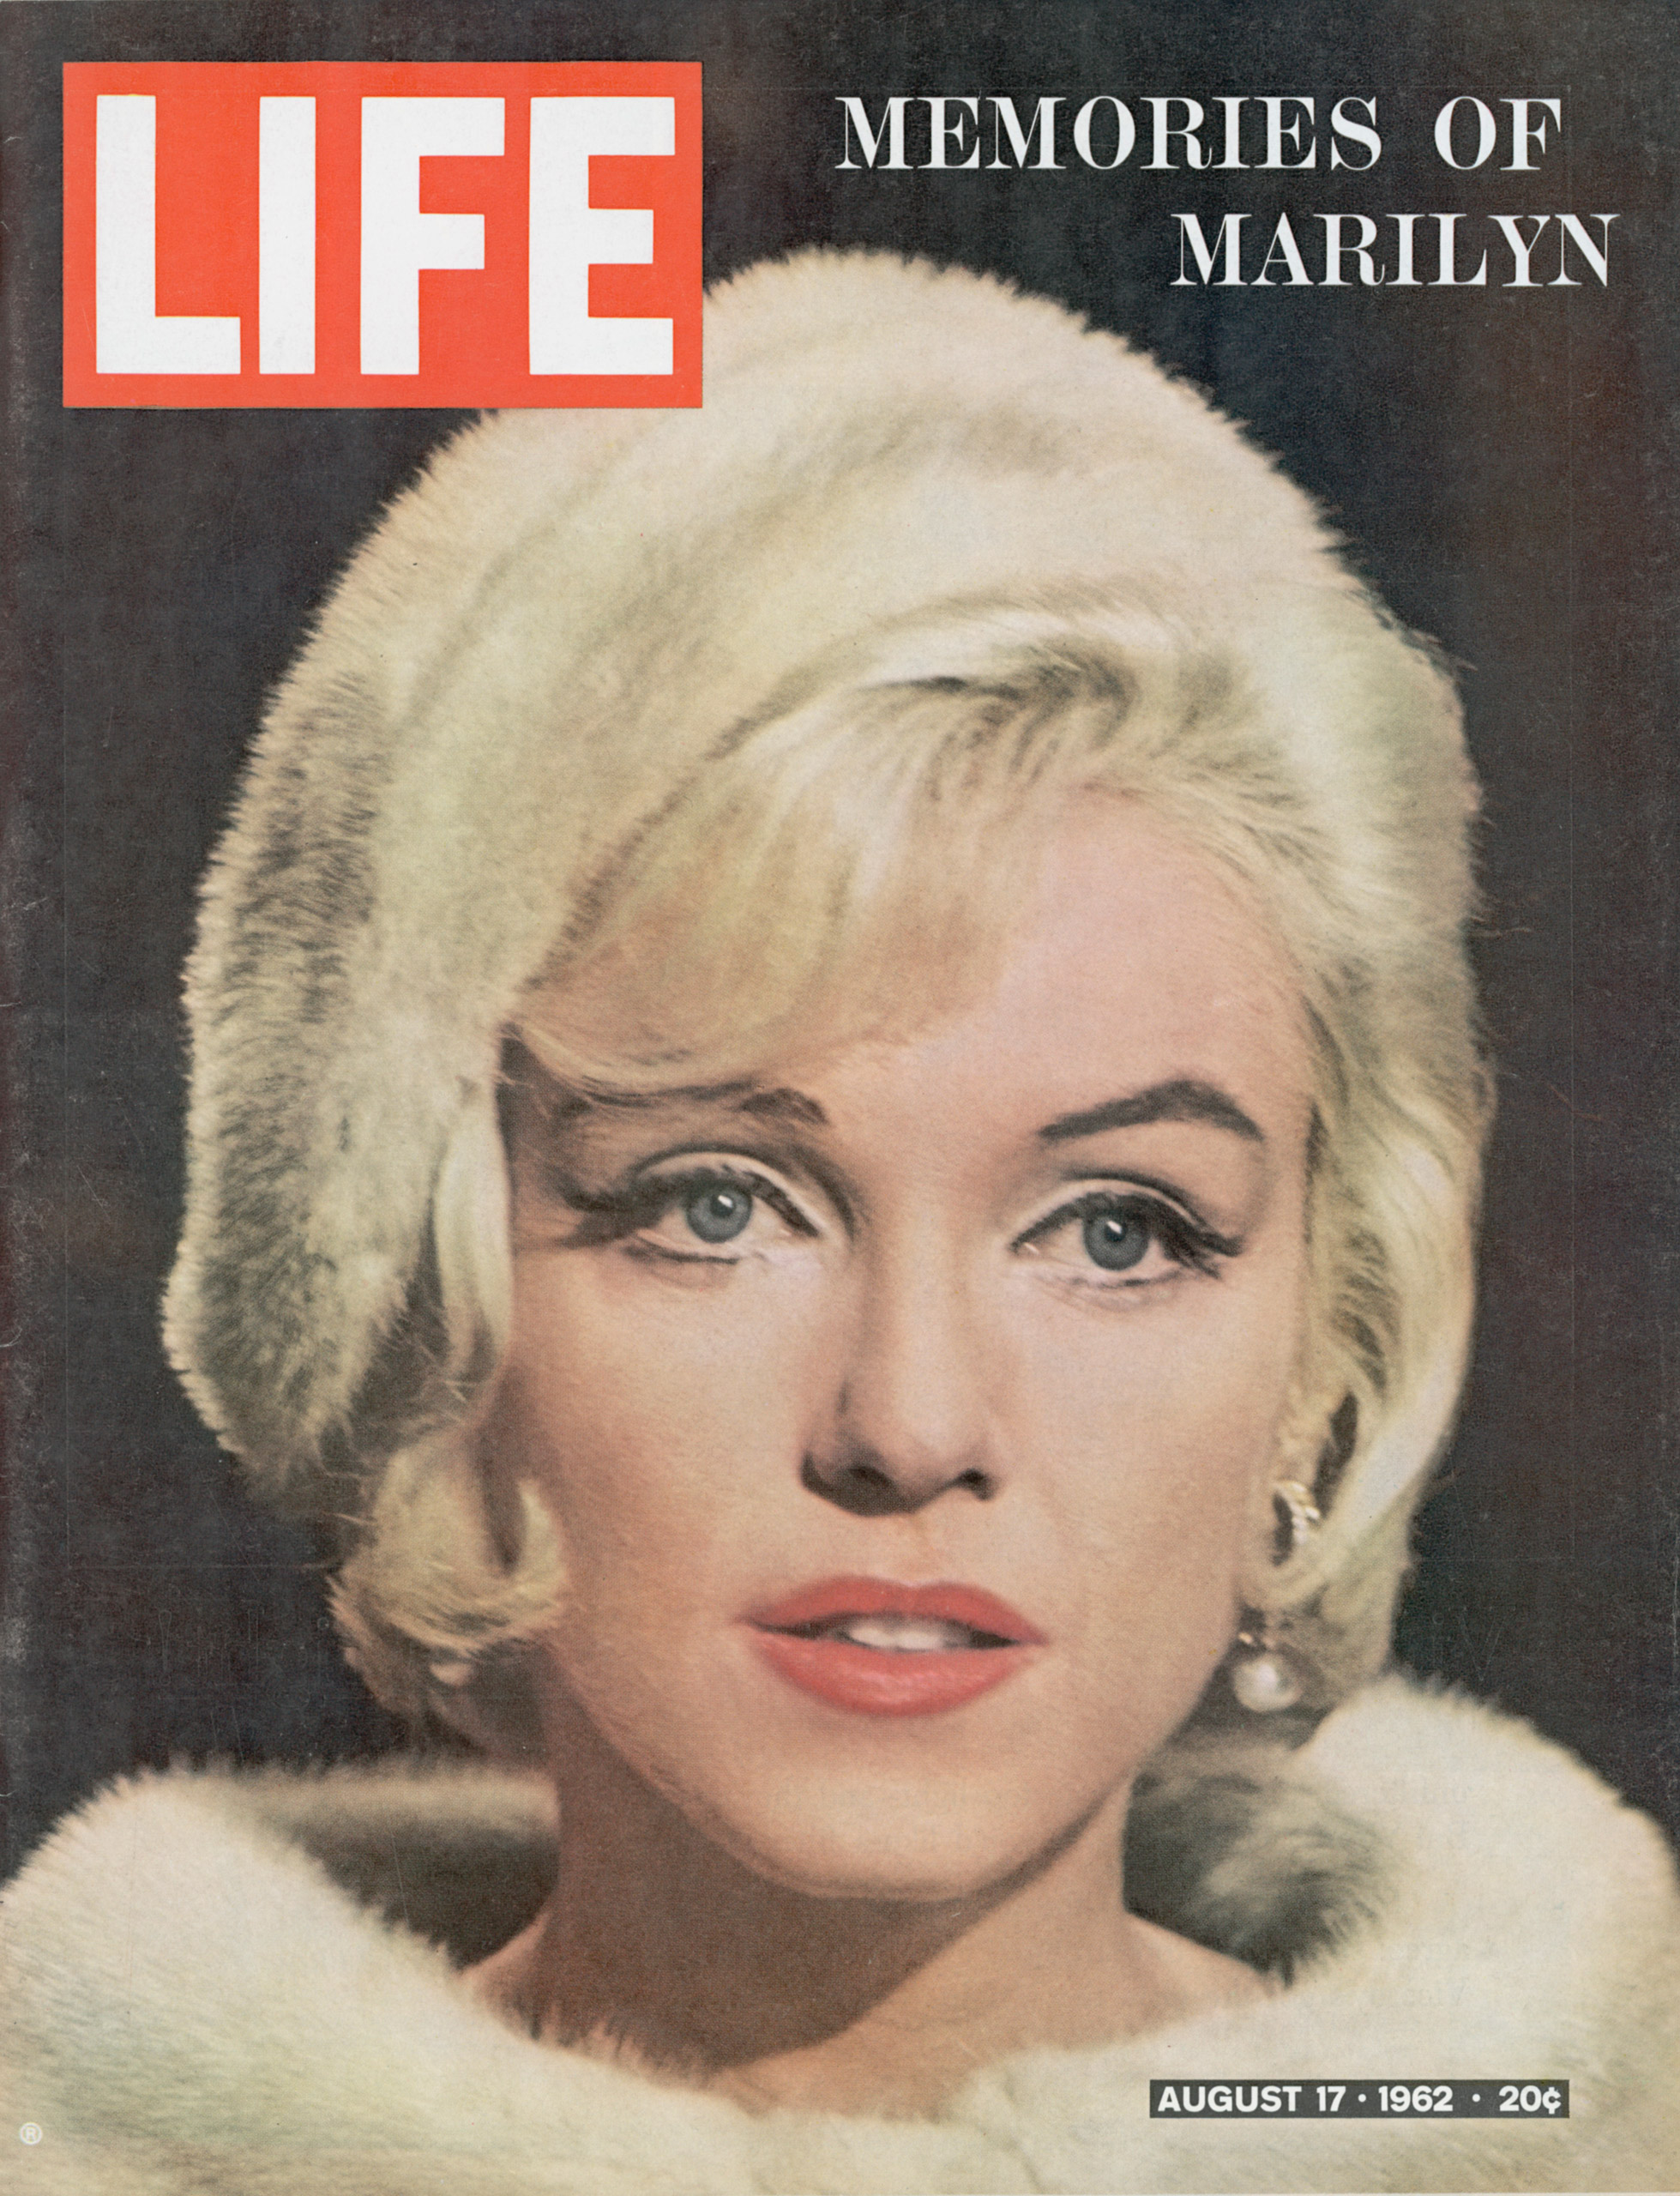 August 17, 1962 cover of LIFE magazine.